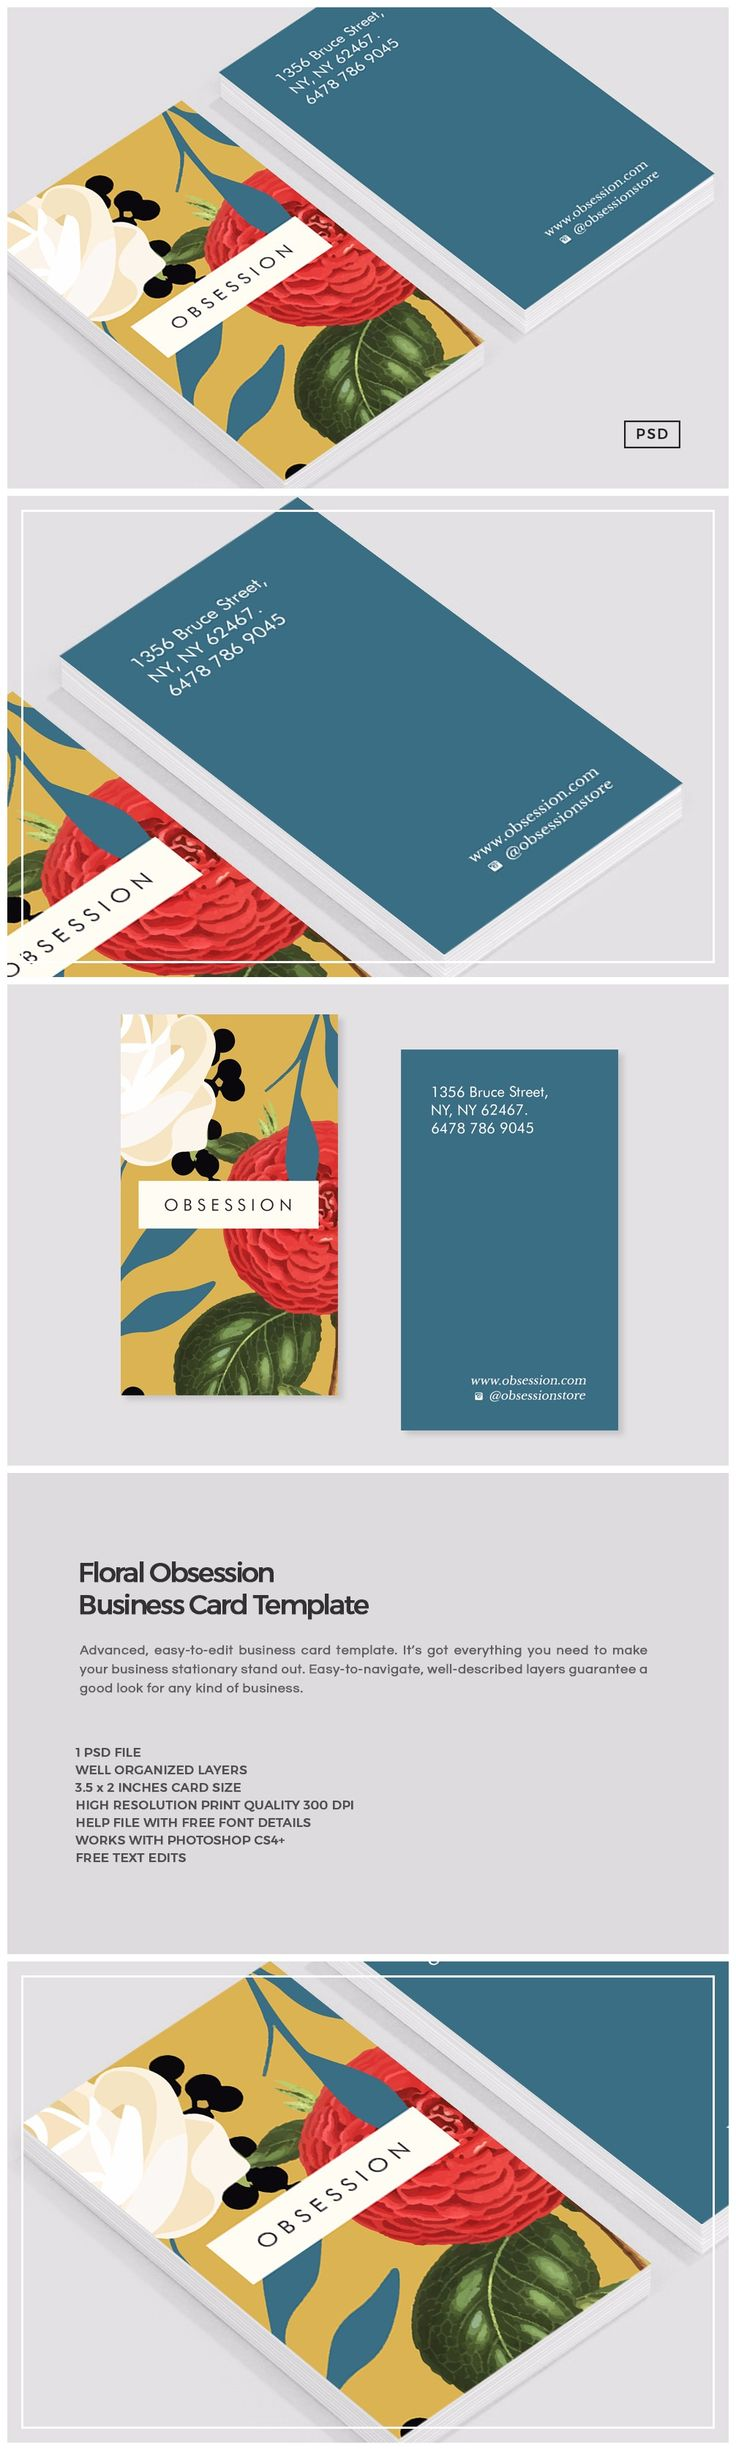 #Floral Obsession Business Card Template now available via #creativemarket ! Make it yours, free text edits included with every purchase. #pattern #illustration